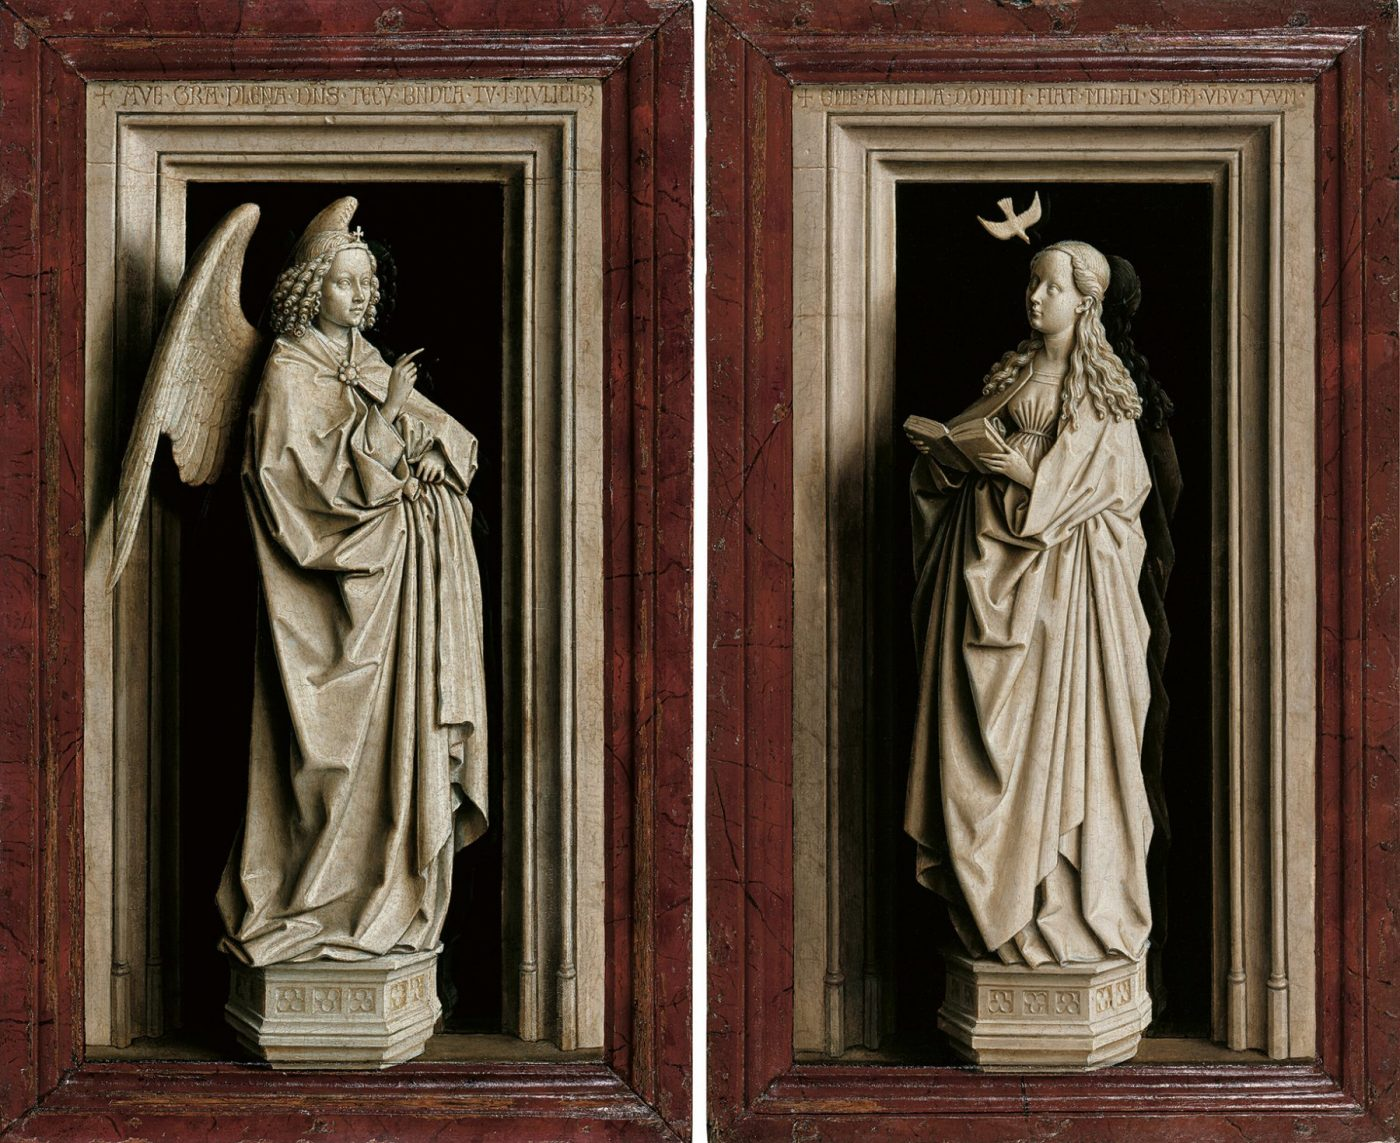 Jan van Eyck, The Annunciation Diptych, c. 1433-35 (Museo Nacional Thyssen-Bornemisza, Madrid)